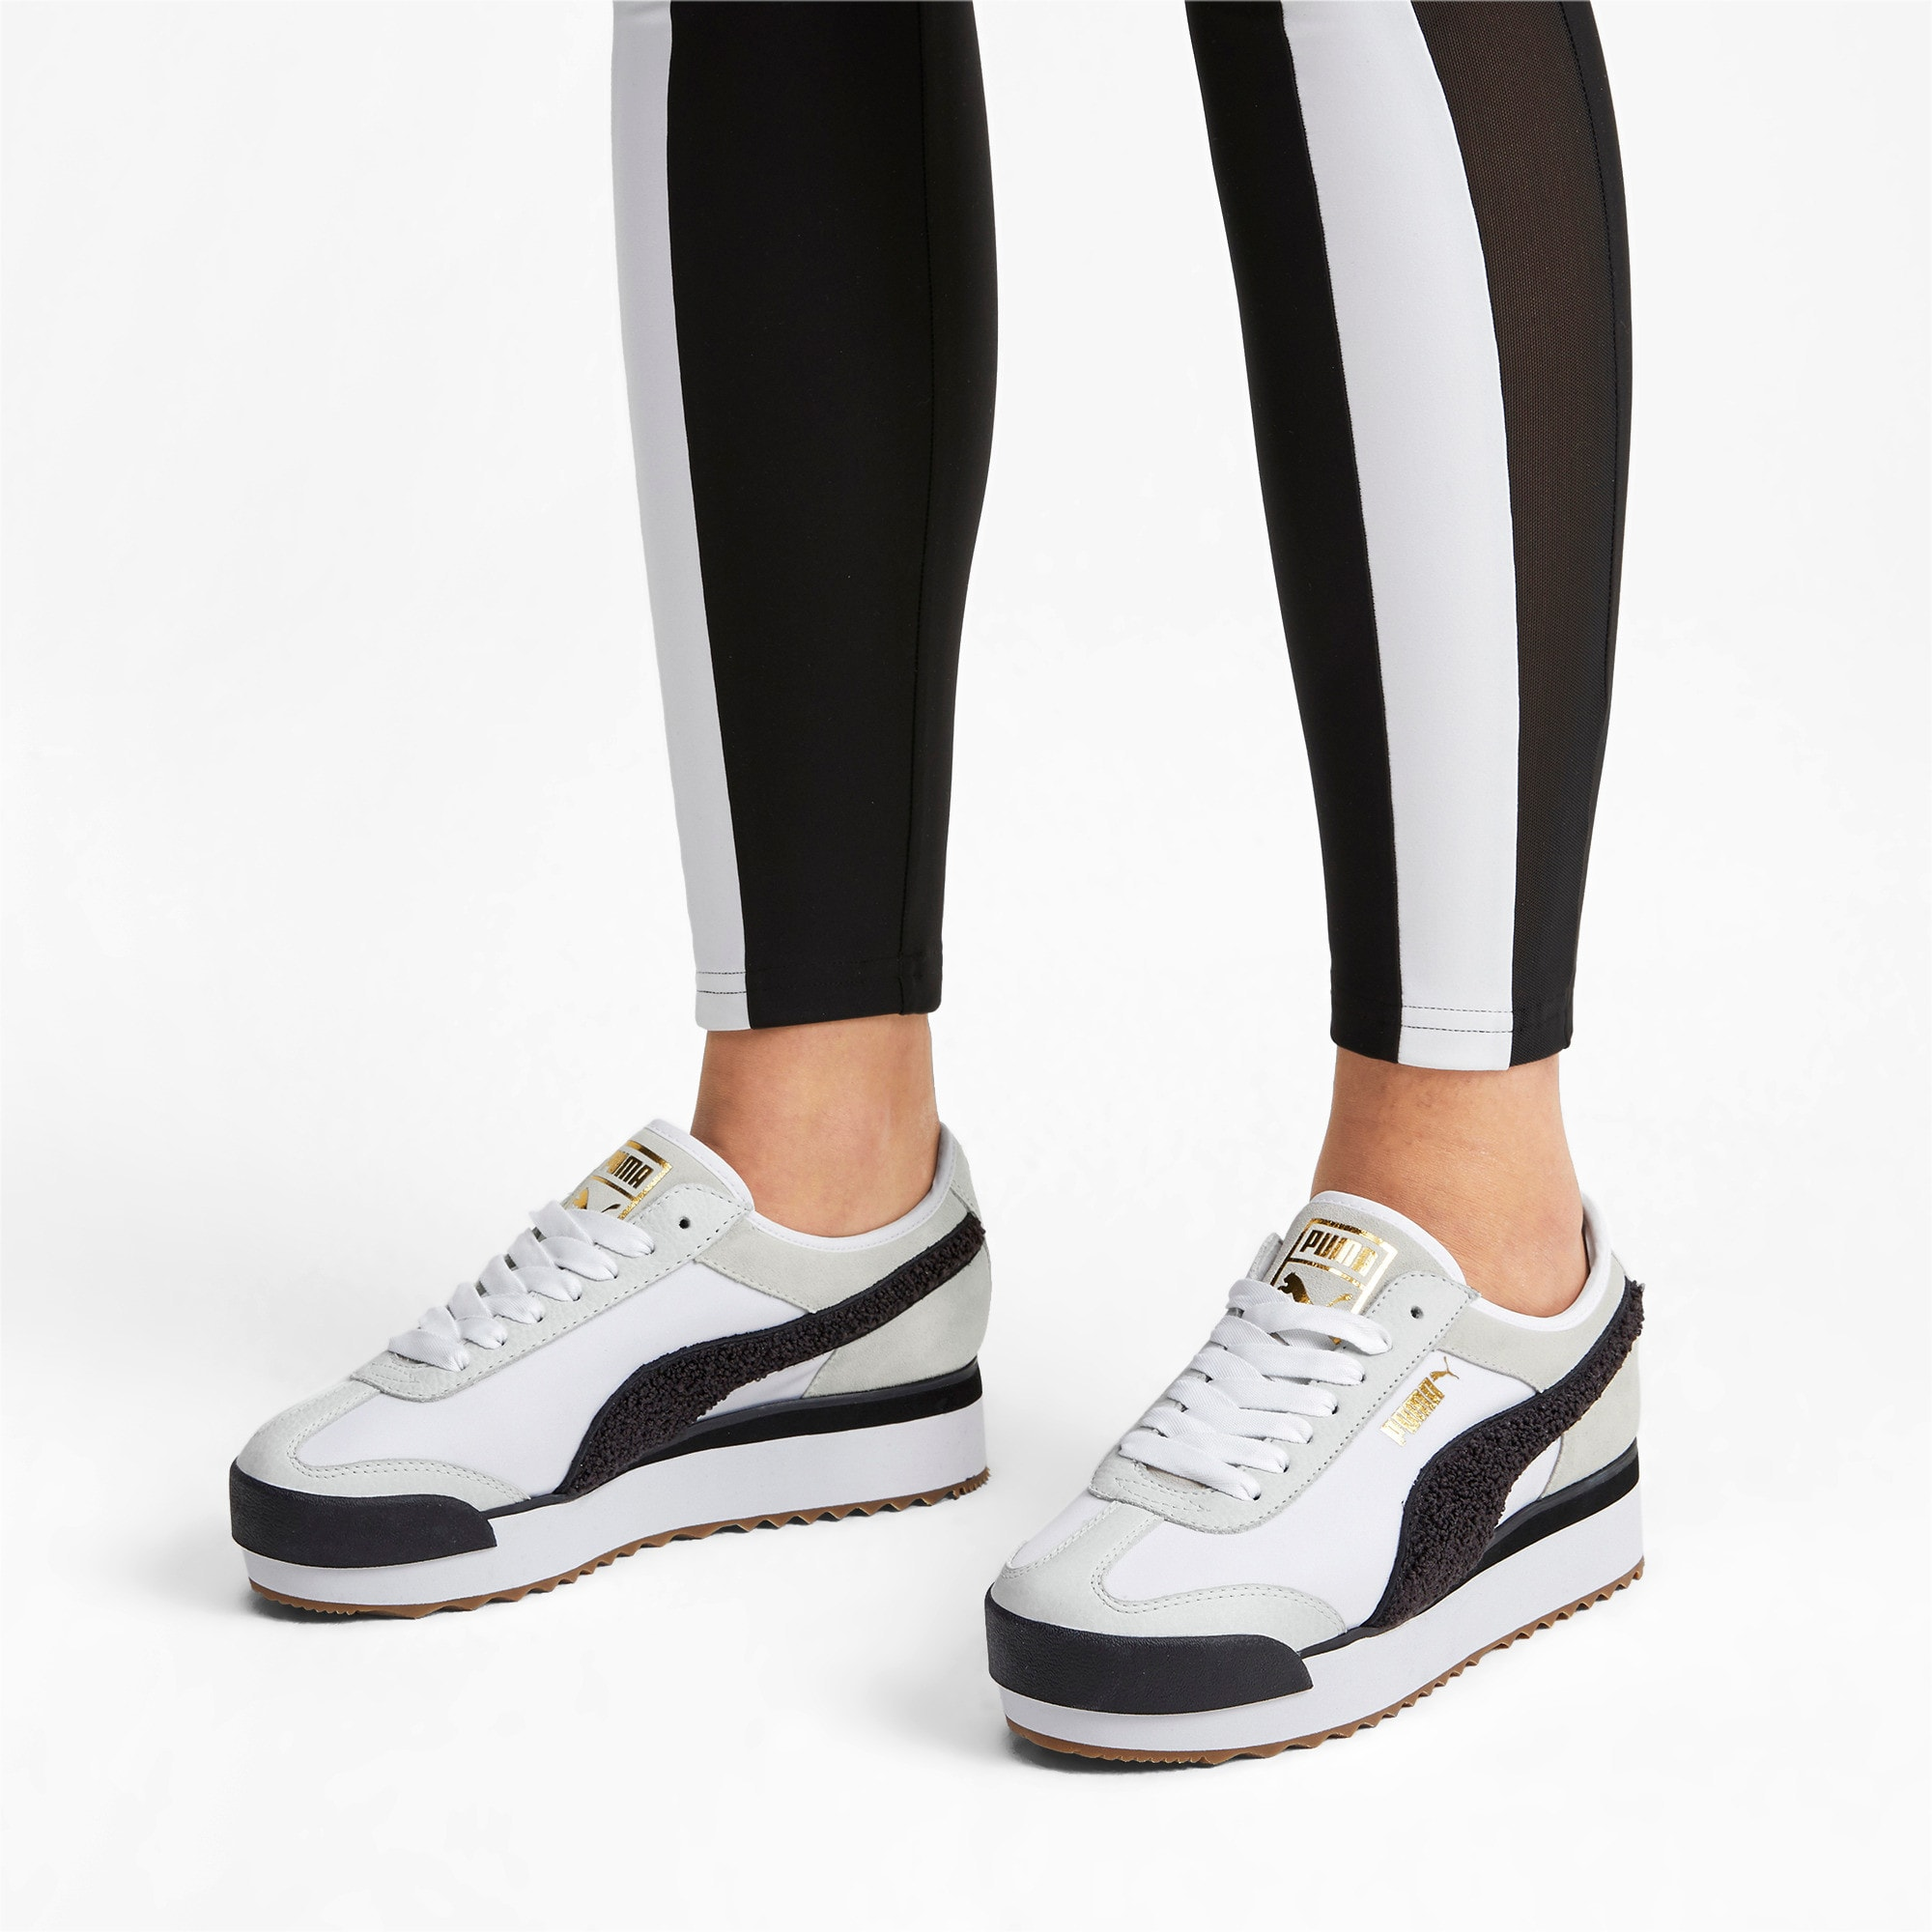 Thumbnail 2 of Roma Amor Heritage Women's Sneakers, Puma White-Puma Black, medium